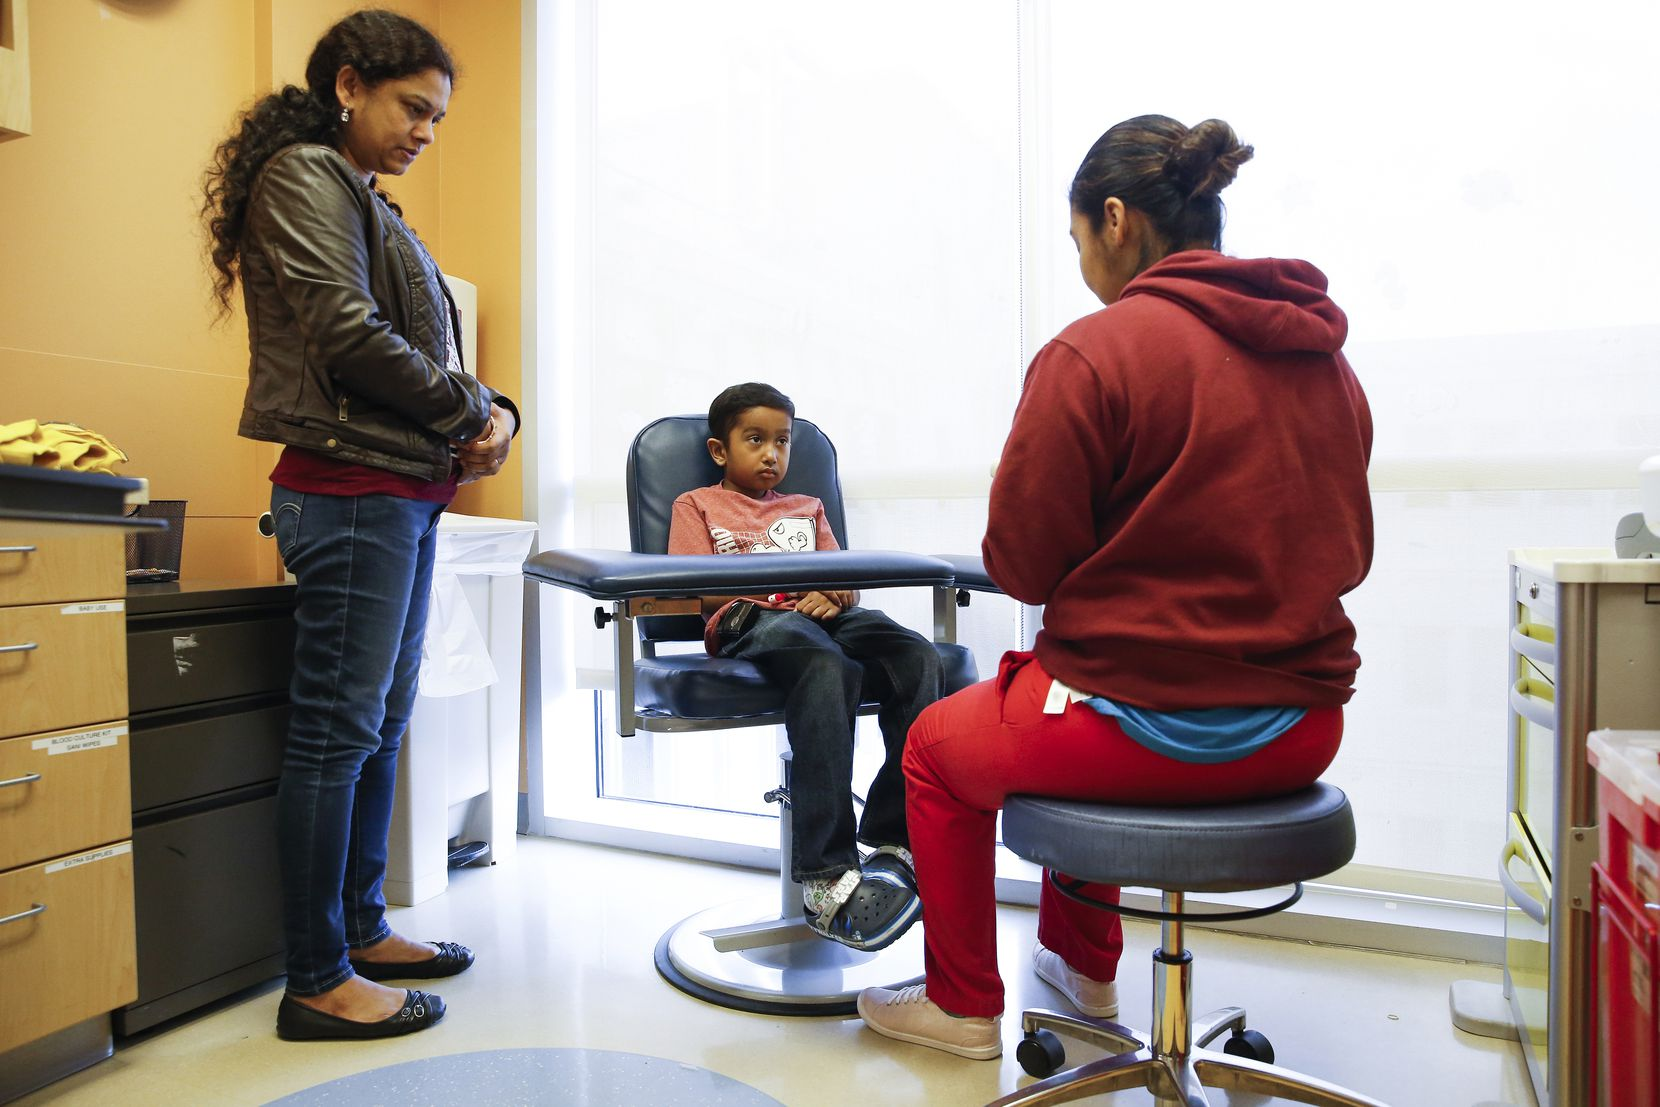 Akshaj Nagilla, 8, of Frisco, prepares to have his blood drawn during a checkup with his mother Anitha Nagilla, left, at Children's Medical Center Dallas on Friday, Feb. 7, 2020 in Dallas. In 2017, when Akshaj was six years old, he was diagnosed with leukemia and in desperate need of a bone marrow transplant. In August of 2017, he received his first transplant through the Be The Match donor program, which his family believes saved his life. After a relapse of the cancer in 2018 he needed a new transplant, which he received two days after Christmas in 2018. Today, Akshaj is now 8 years old and is still in remission, often visiting Children's Medical Center for checkups and blood work. (Ryan Michalesko/The Dallas Morning News)